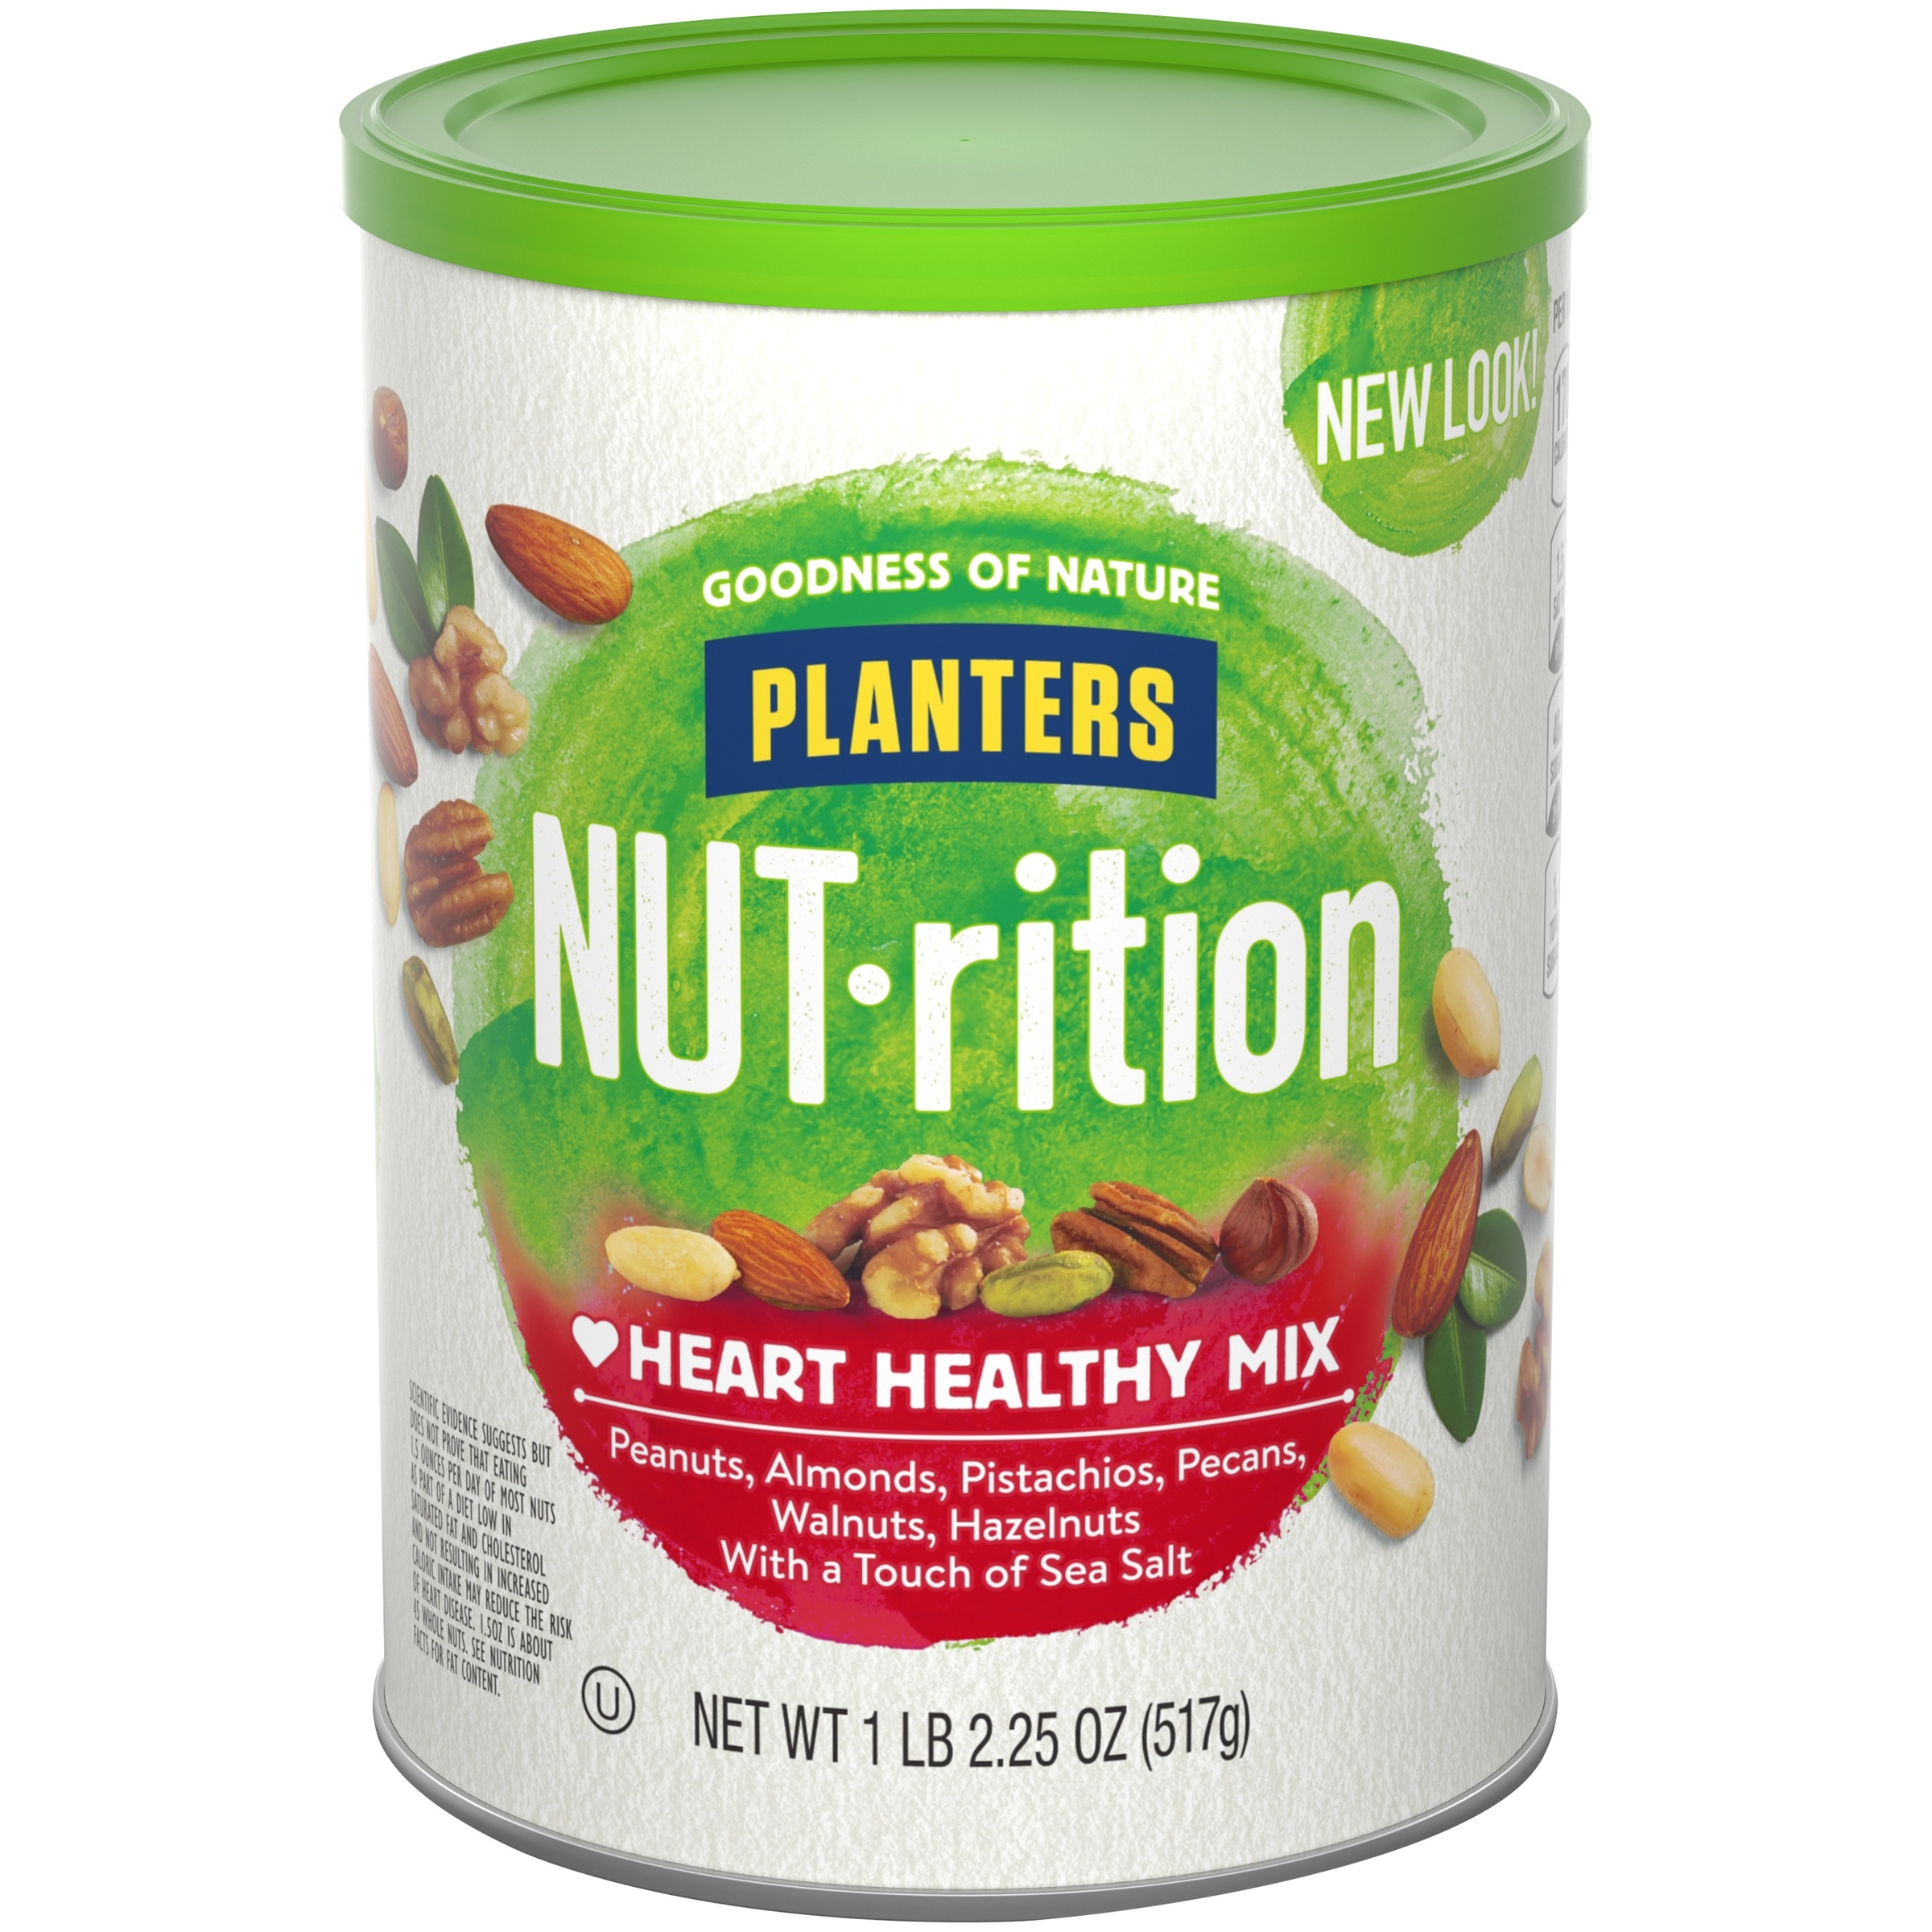 Planters NUT-rition Heart Healthy Mix 1.14 lb. Canister